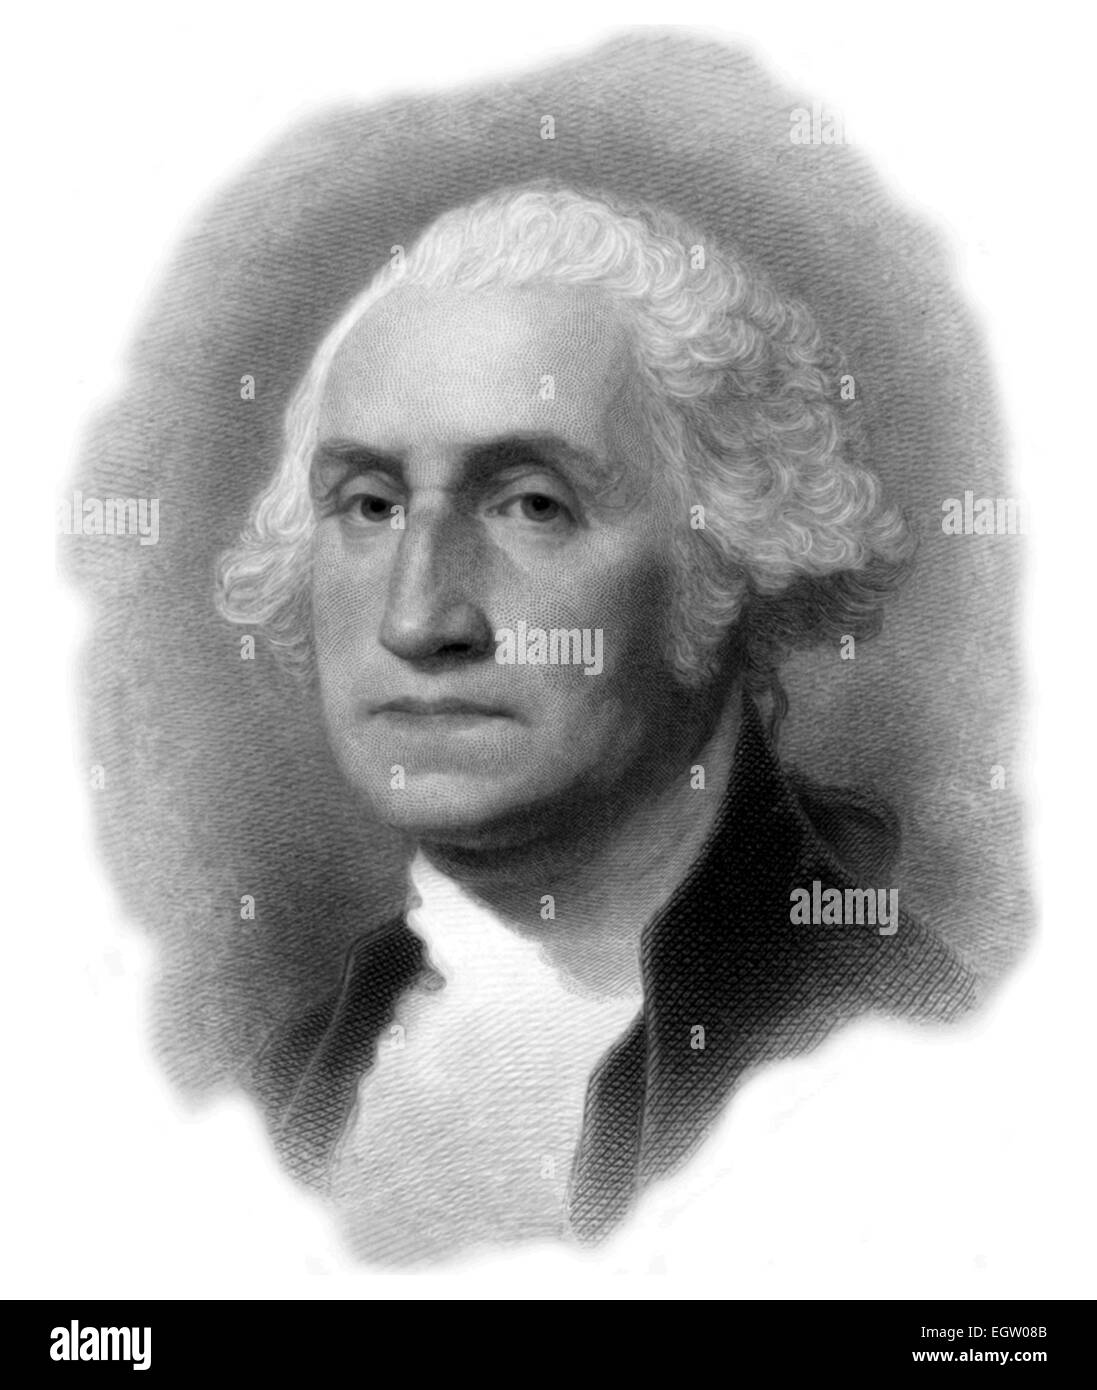 Portrait of American President George Washington in an engraving by Gilbert Stuart 1879. - Stock Image